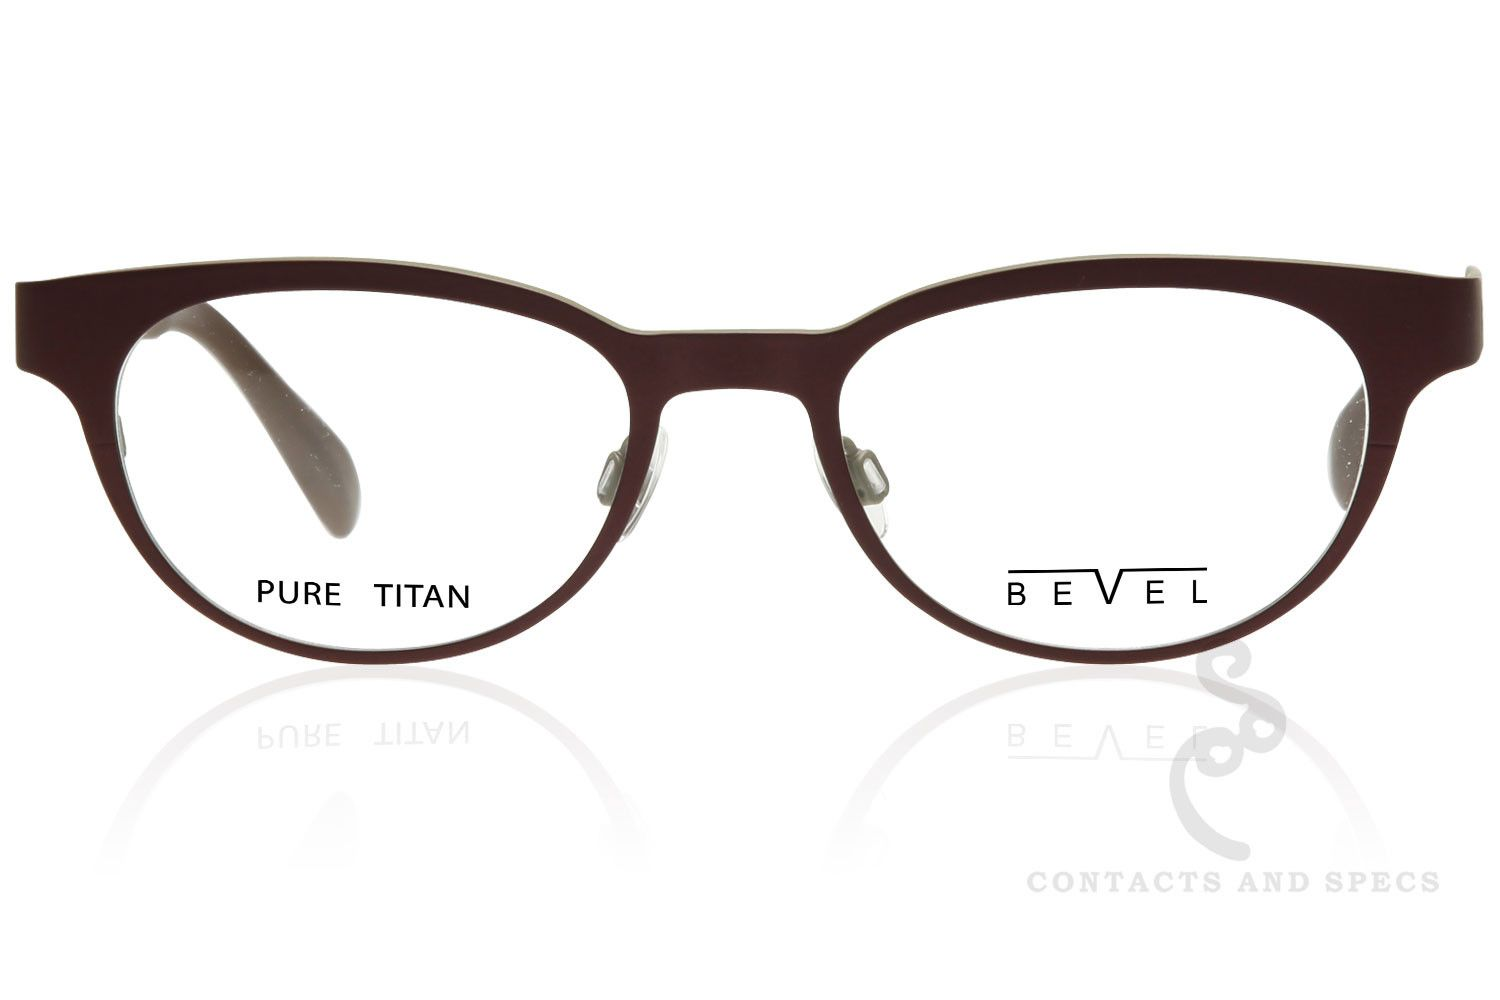 b8ee5ad9fc Bevel Spectacles Bouchon